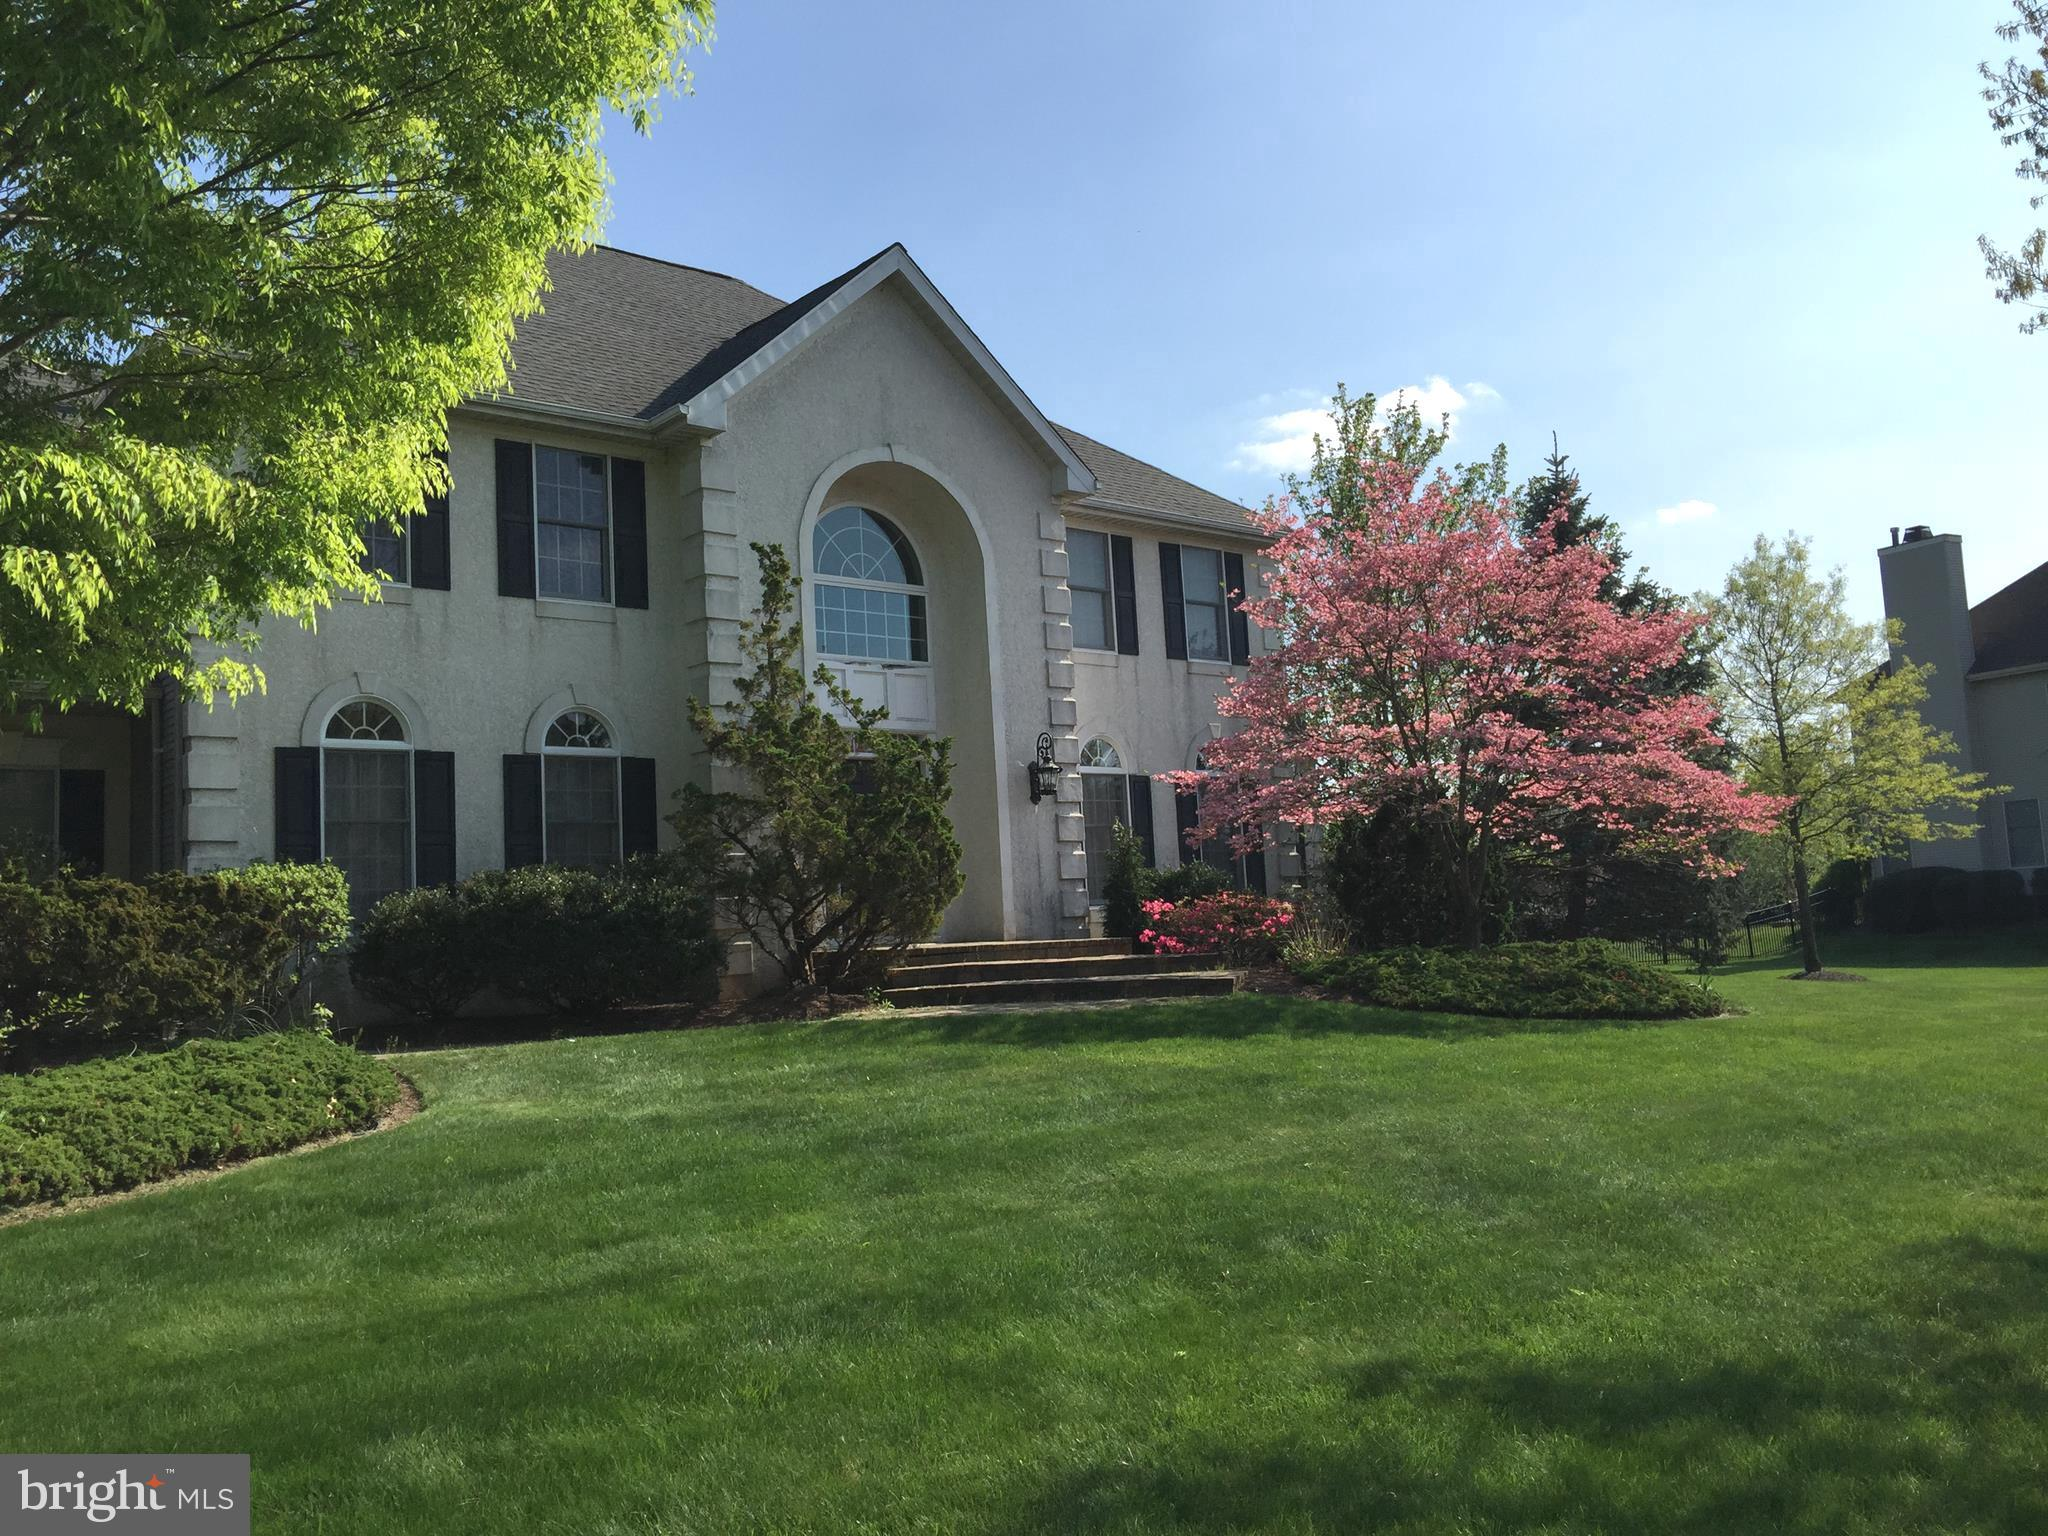 3 CARDINAL DRIVE, PRINCETON JUNCTION, NJ 08550